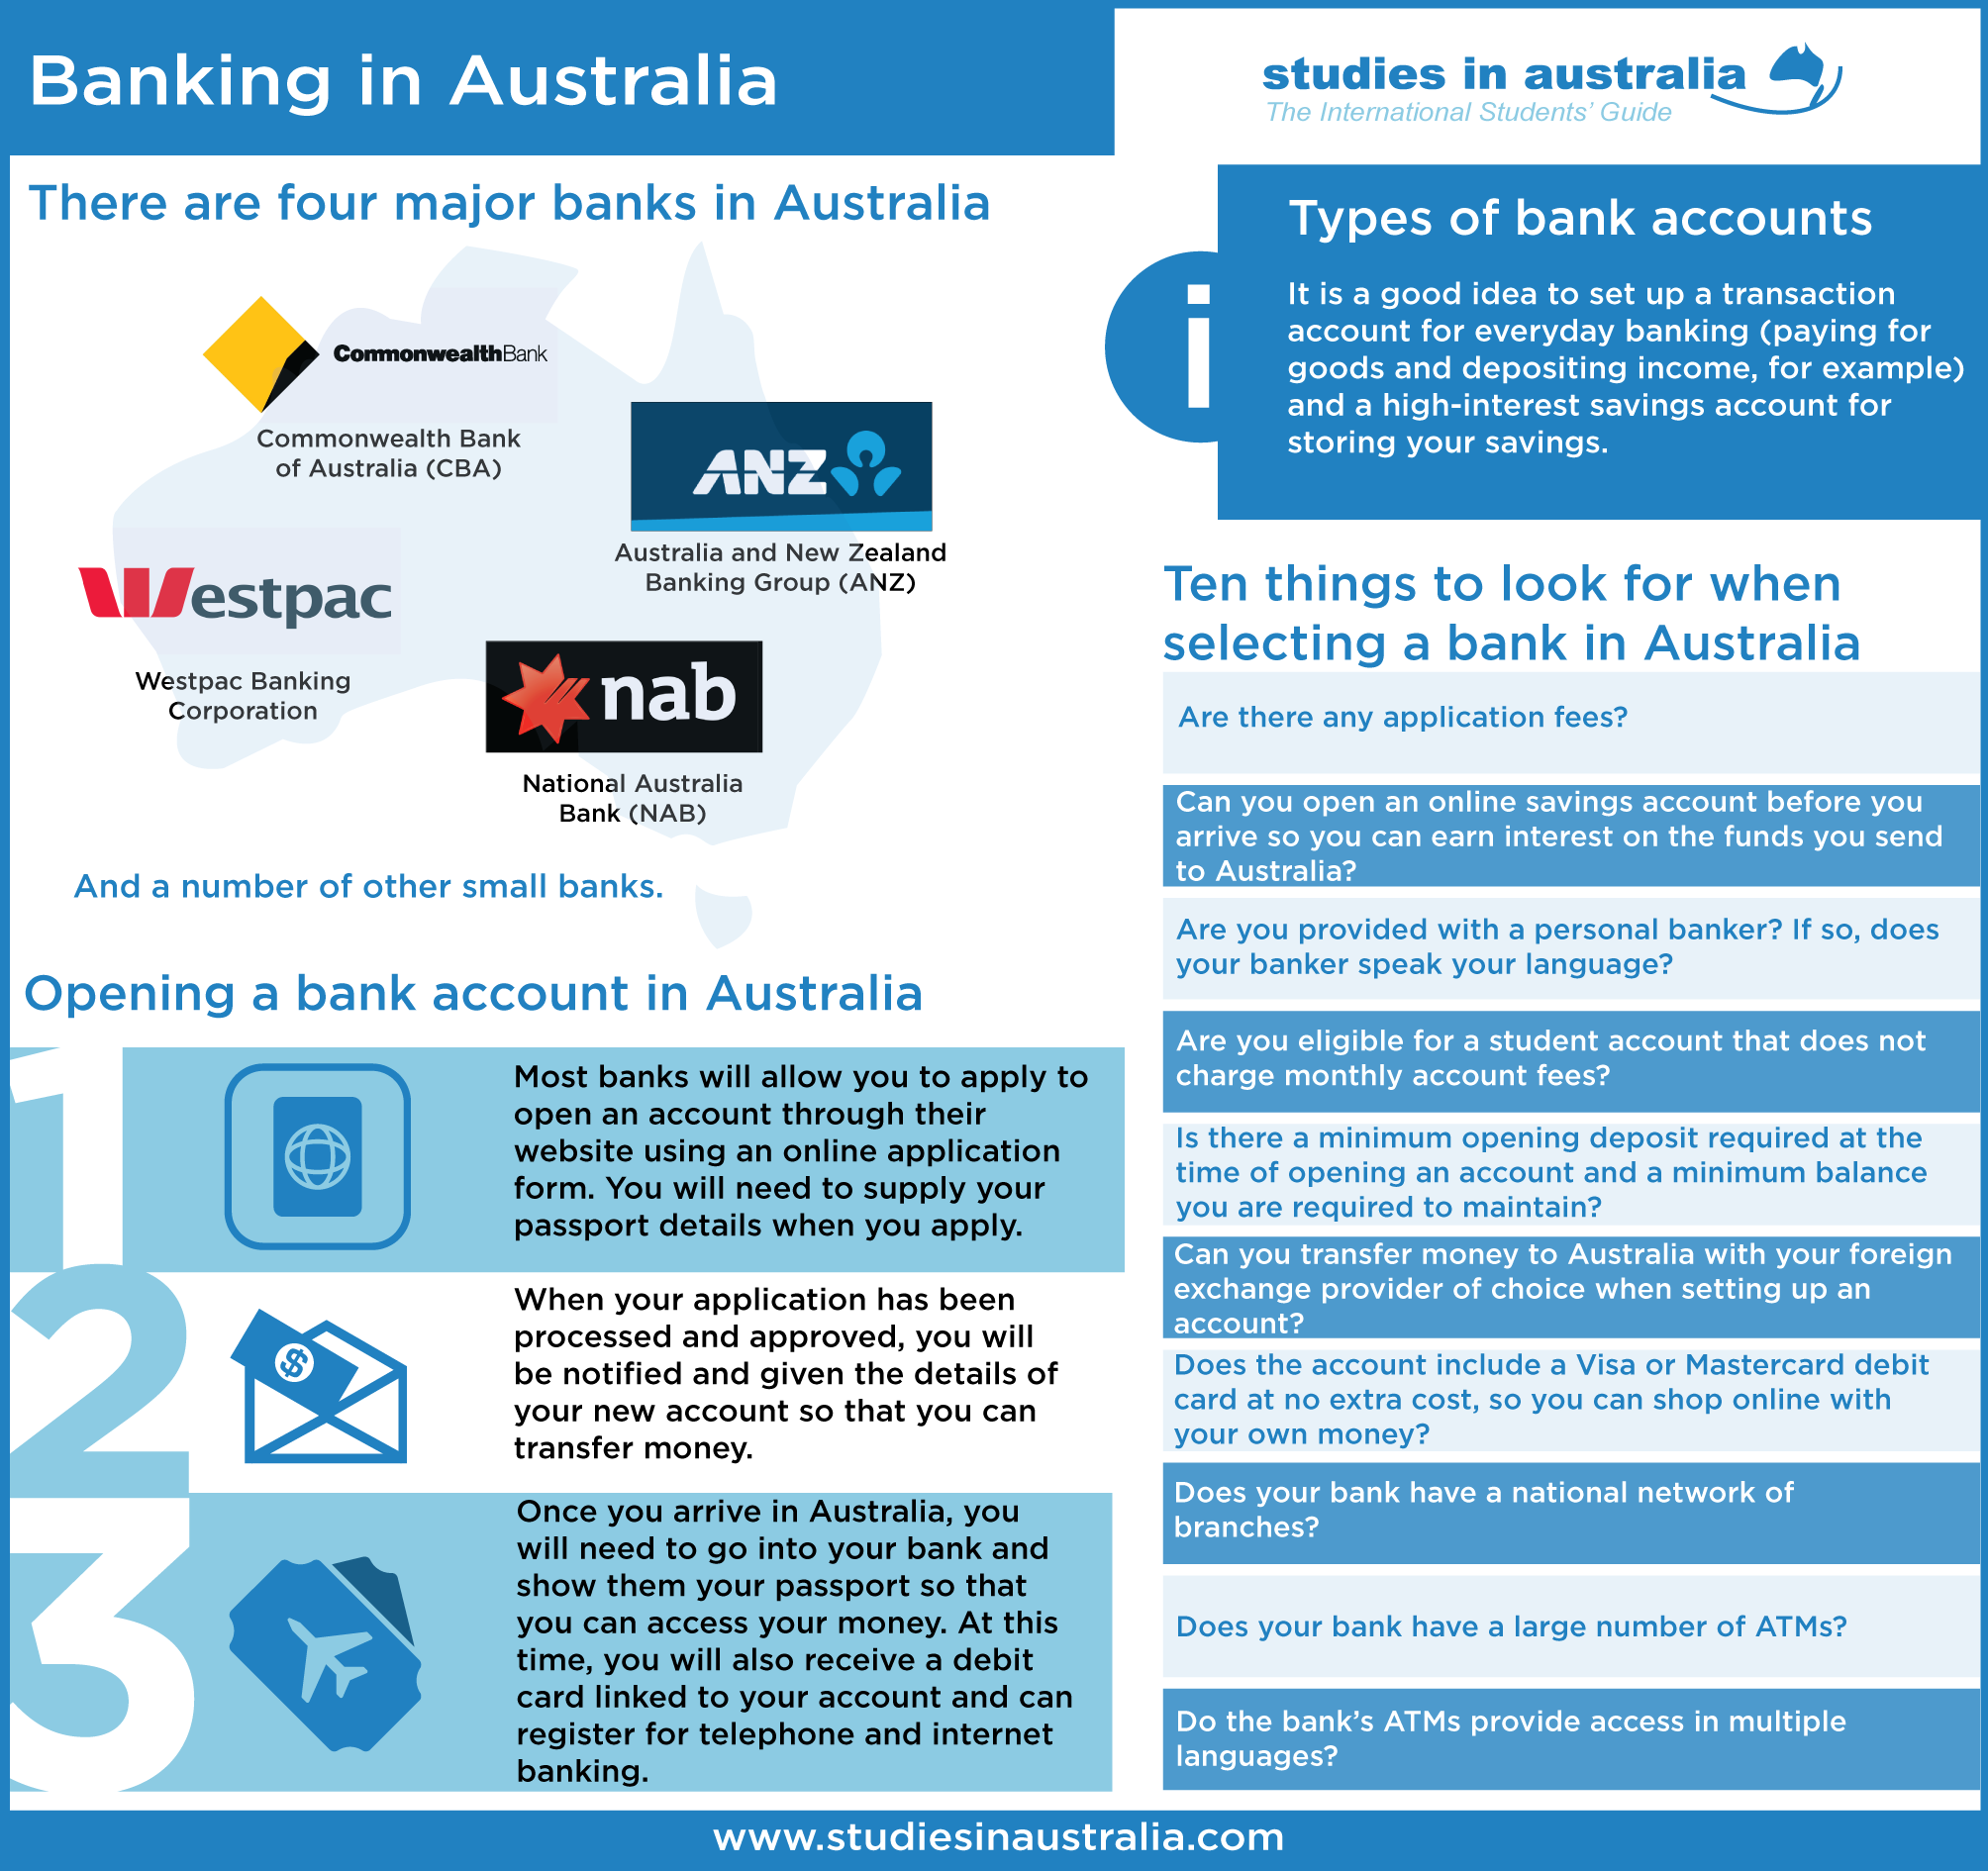 Banking In Australia Study Wiring Money To Foreign Bank Account If You Do Not Have A Personal Cheque Book Can Still Make Payment Using From Your Transaction By Going Into Branch And